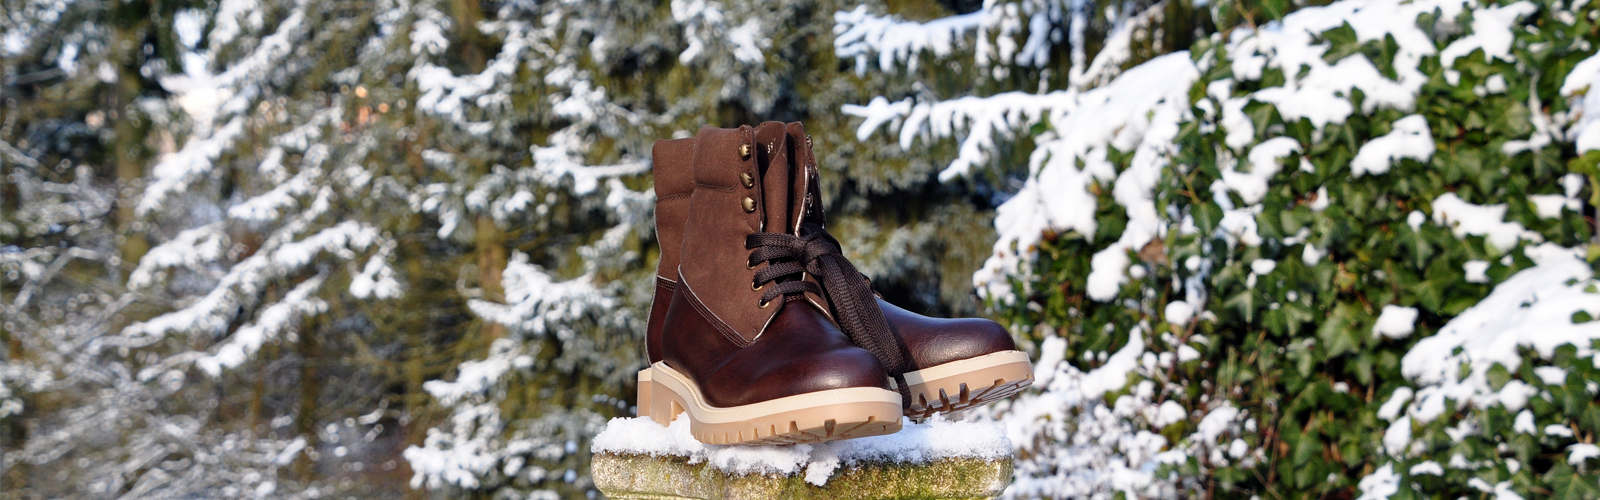 Chaussures d'hiver unisexe